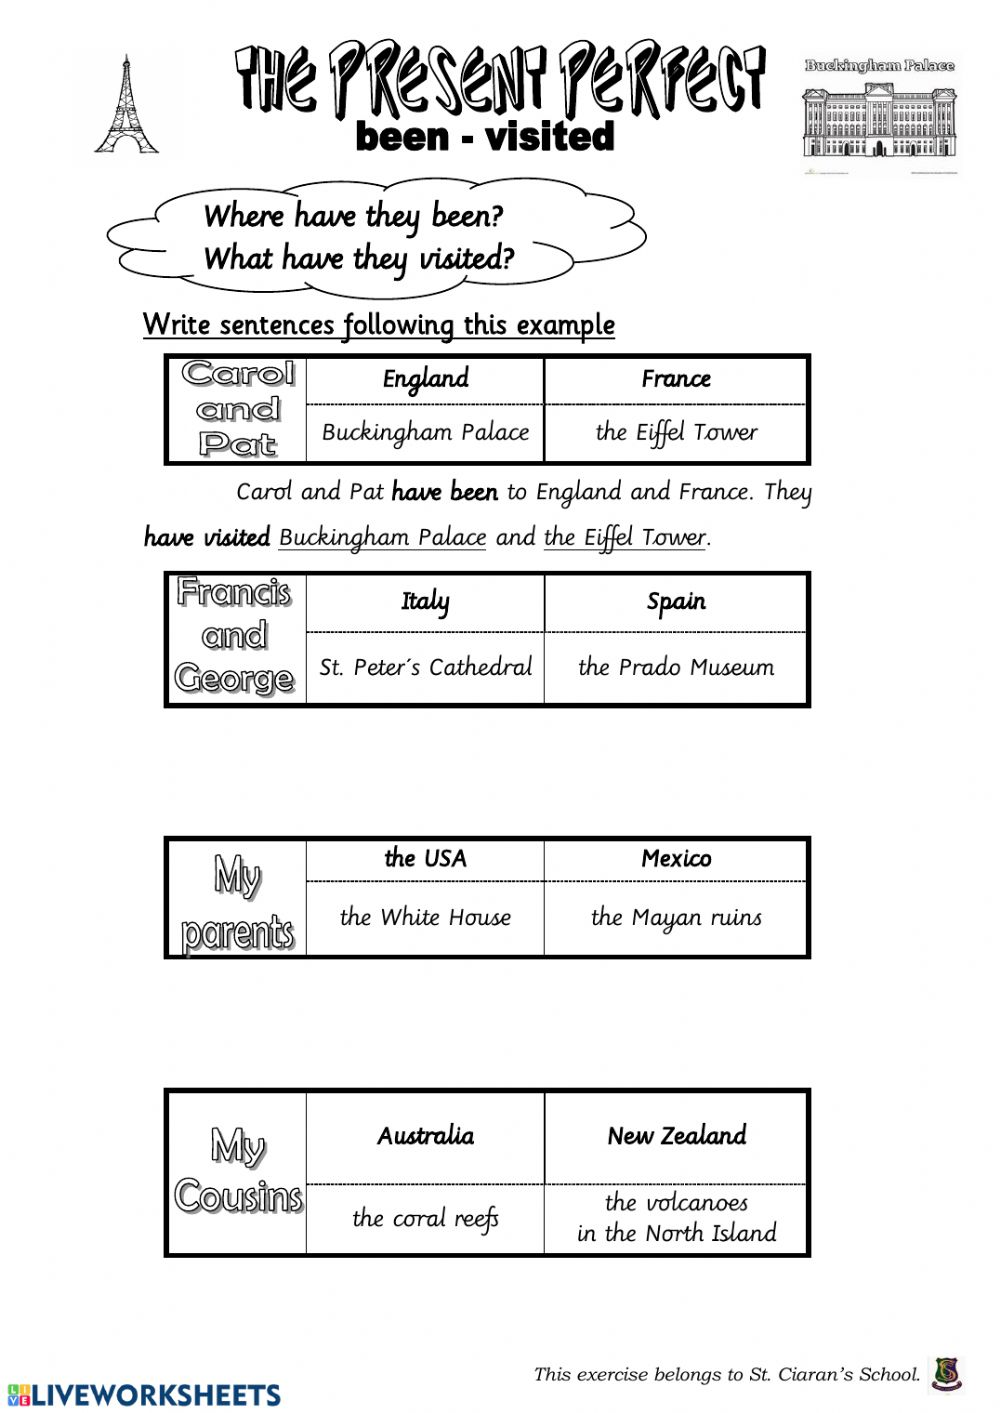 hight resolution of Present Perfect - Been-Visited interactive worksheet